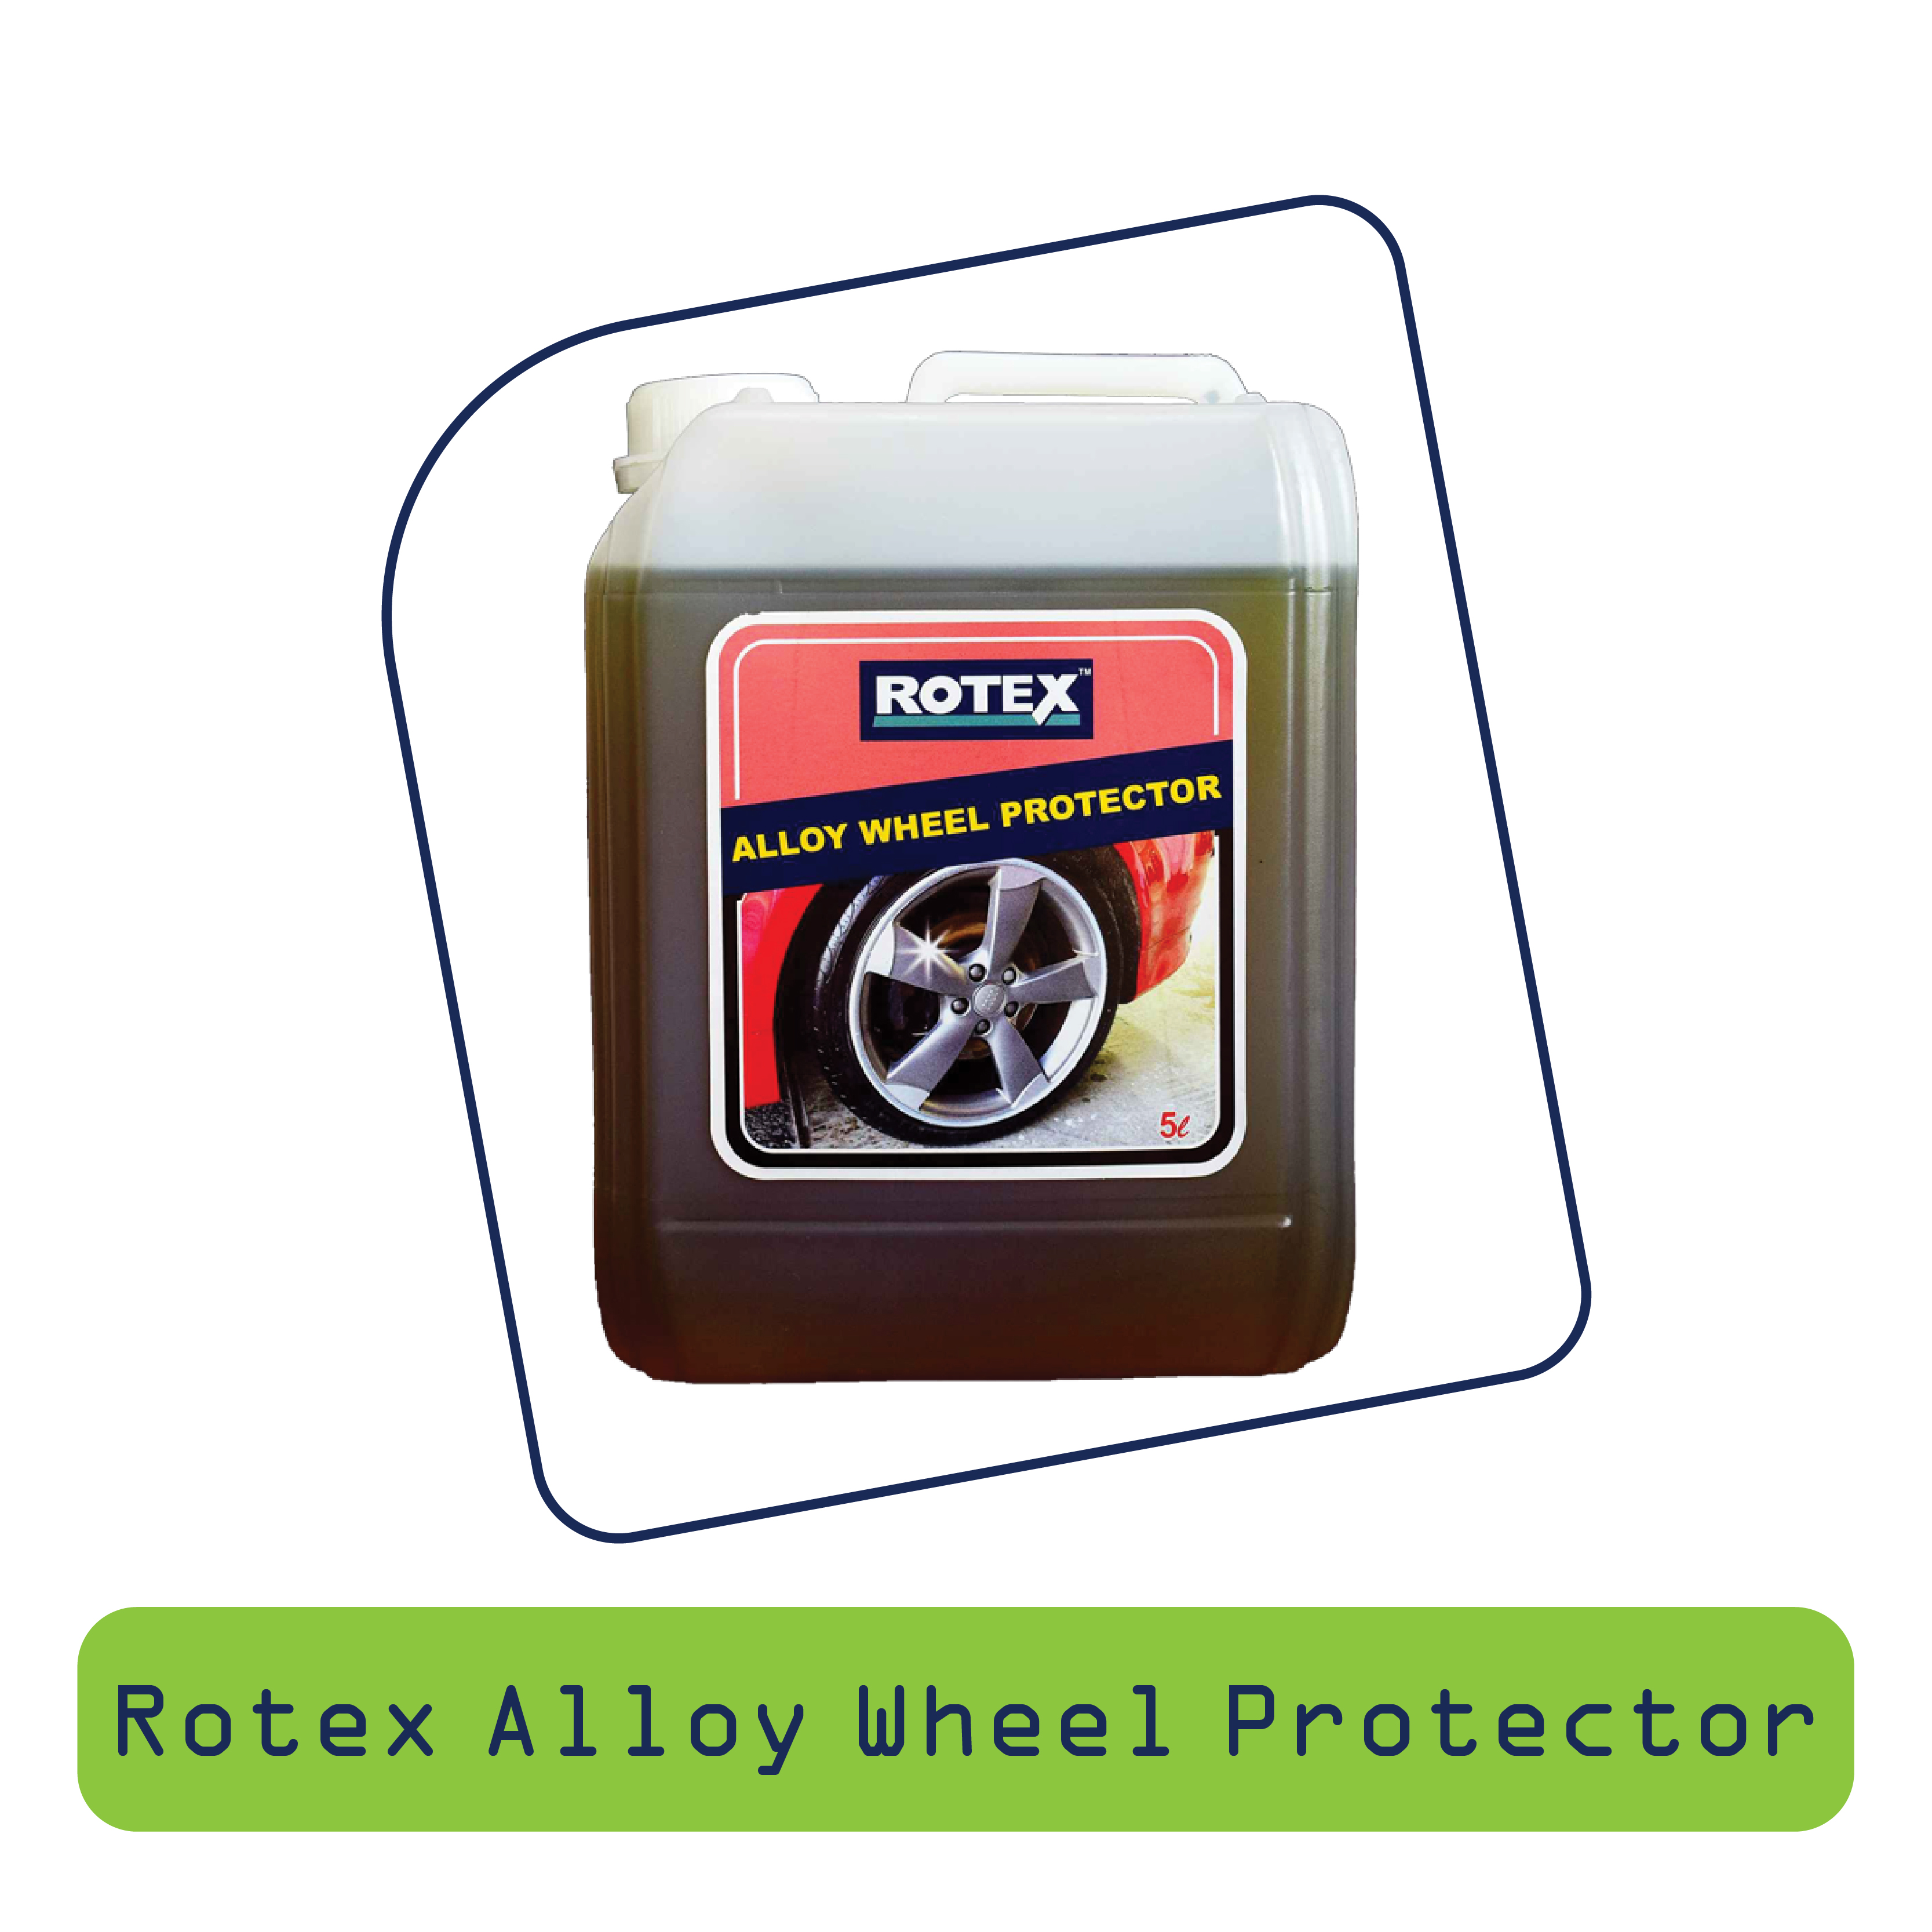 Rotex Alloy Wheel Proetector